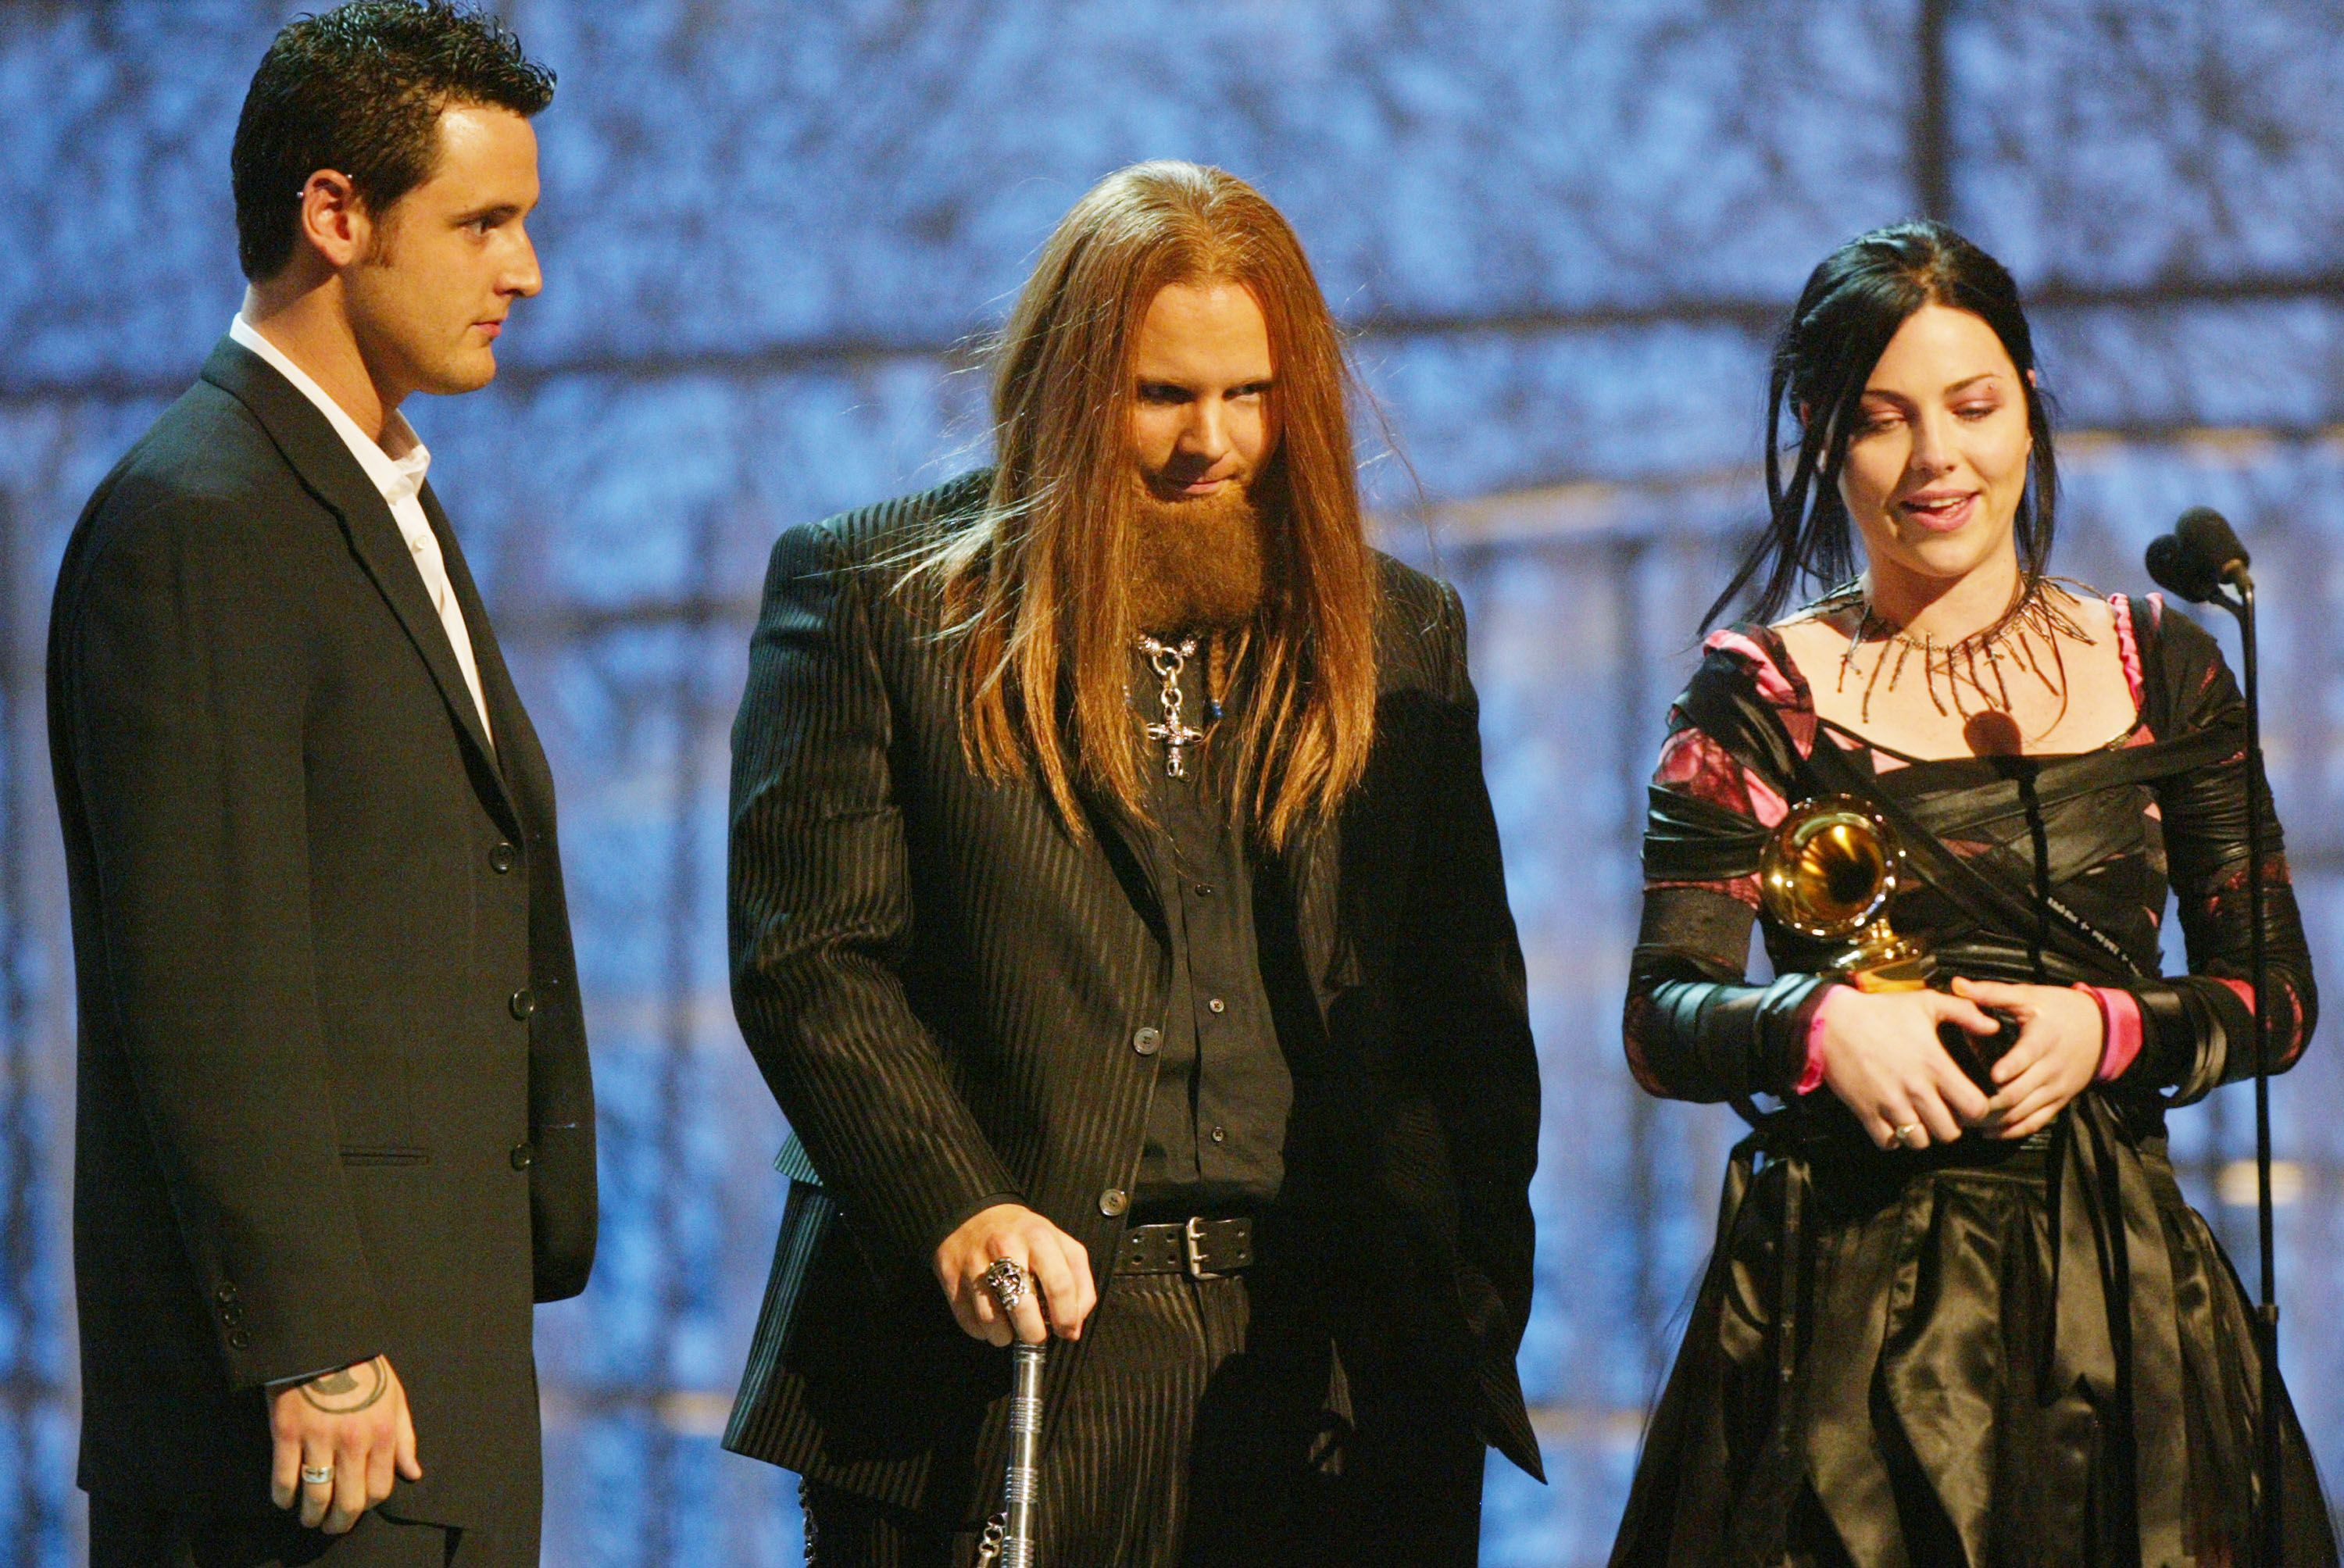 Then: Evanescence